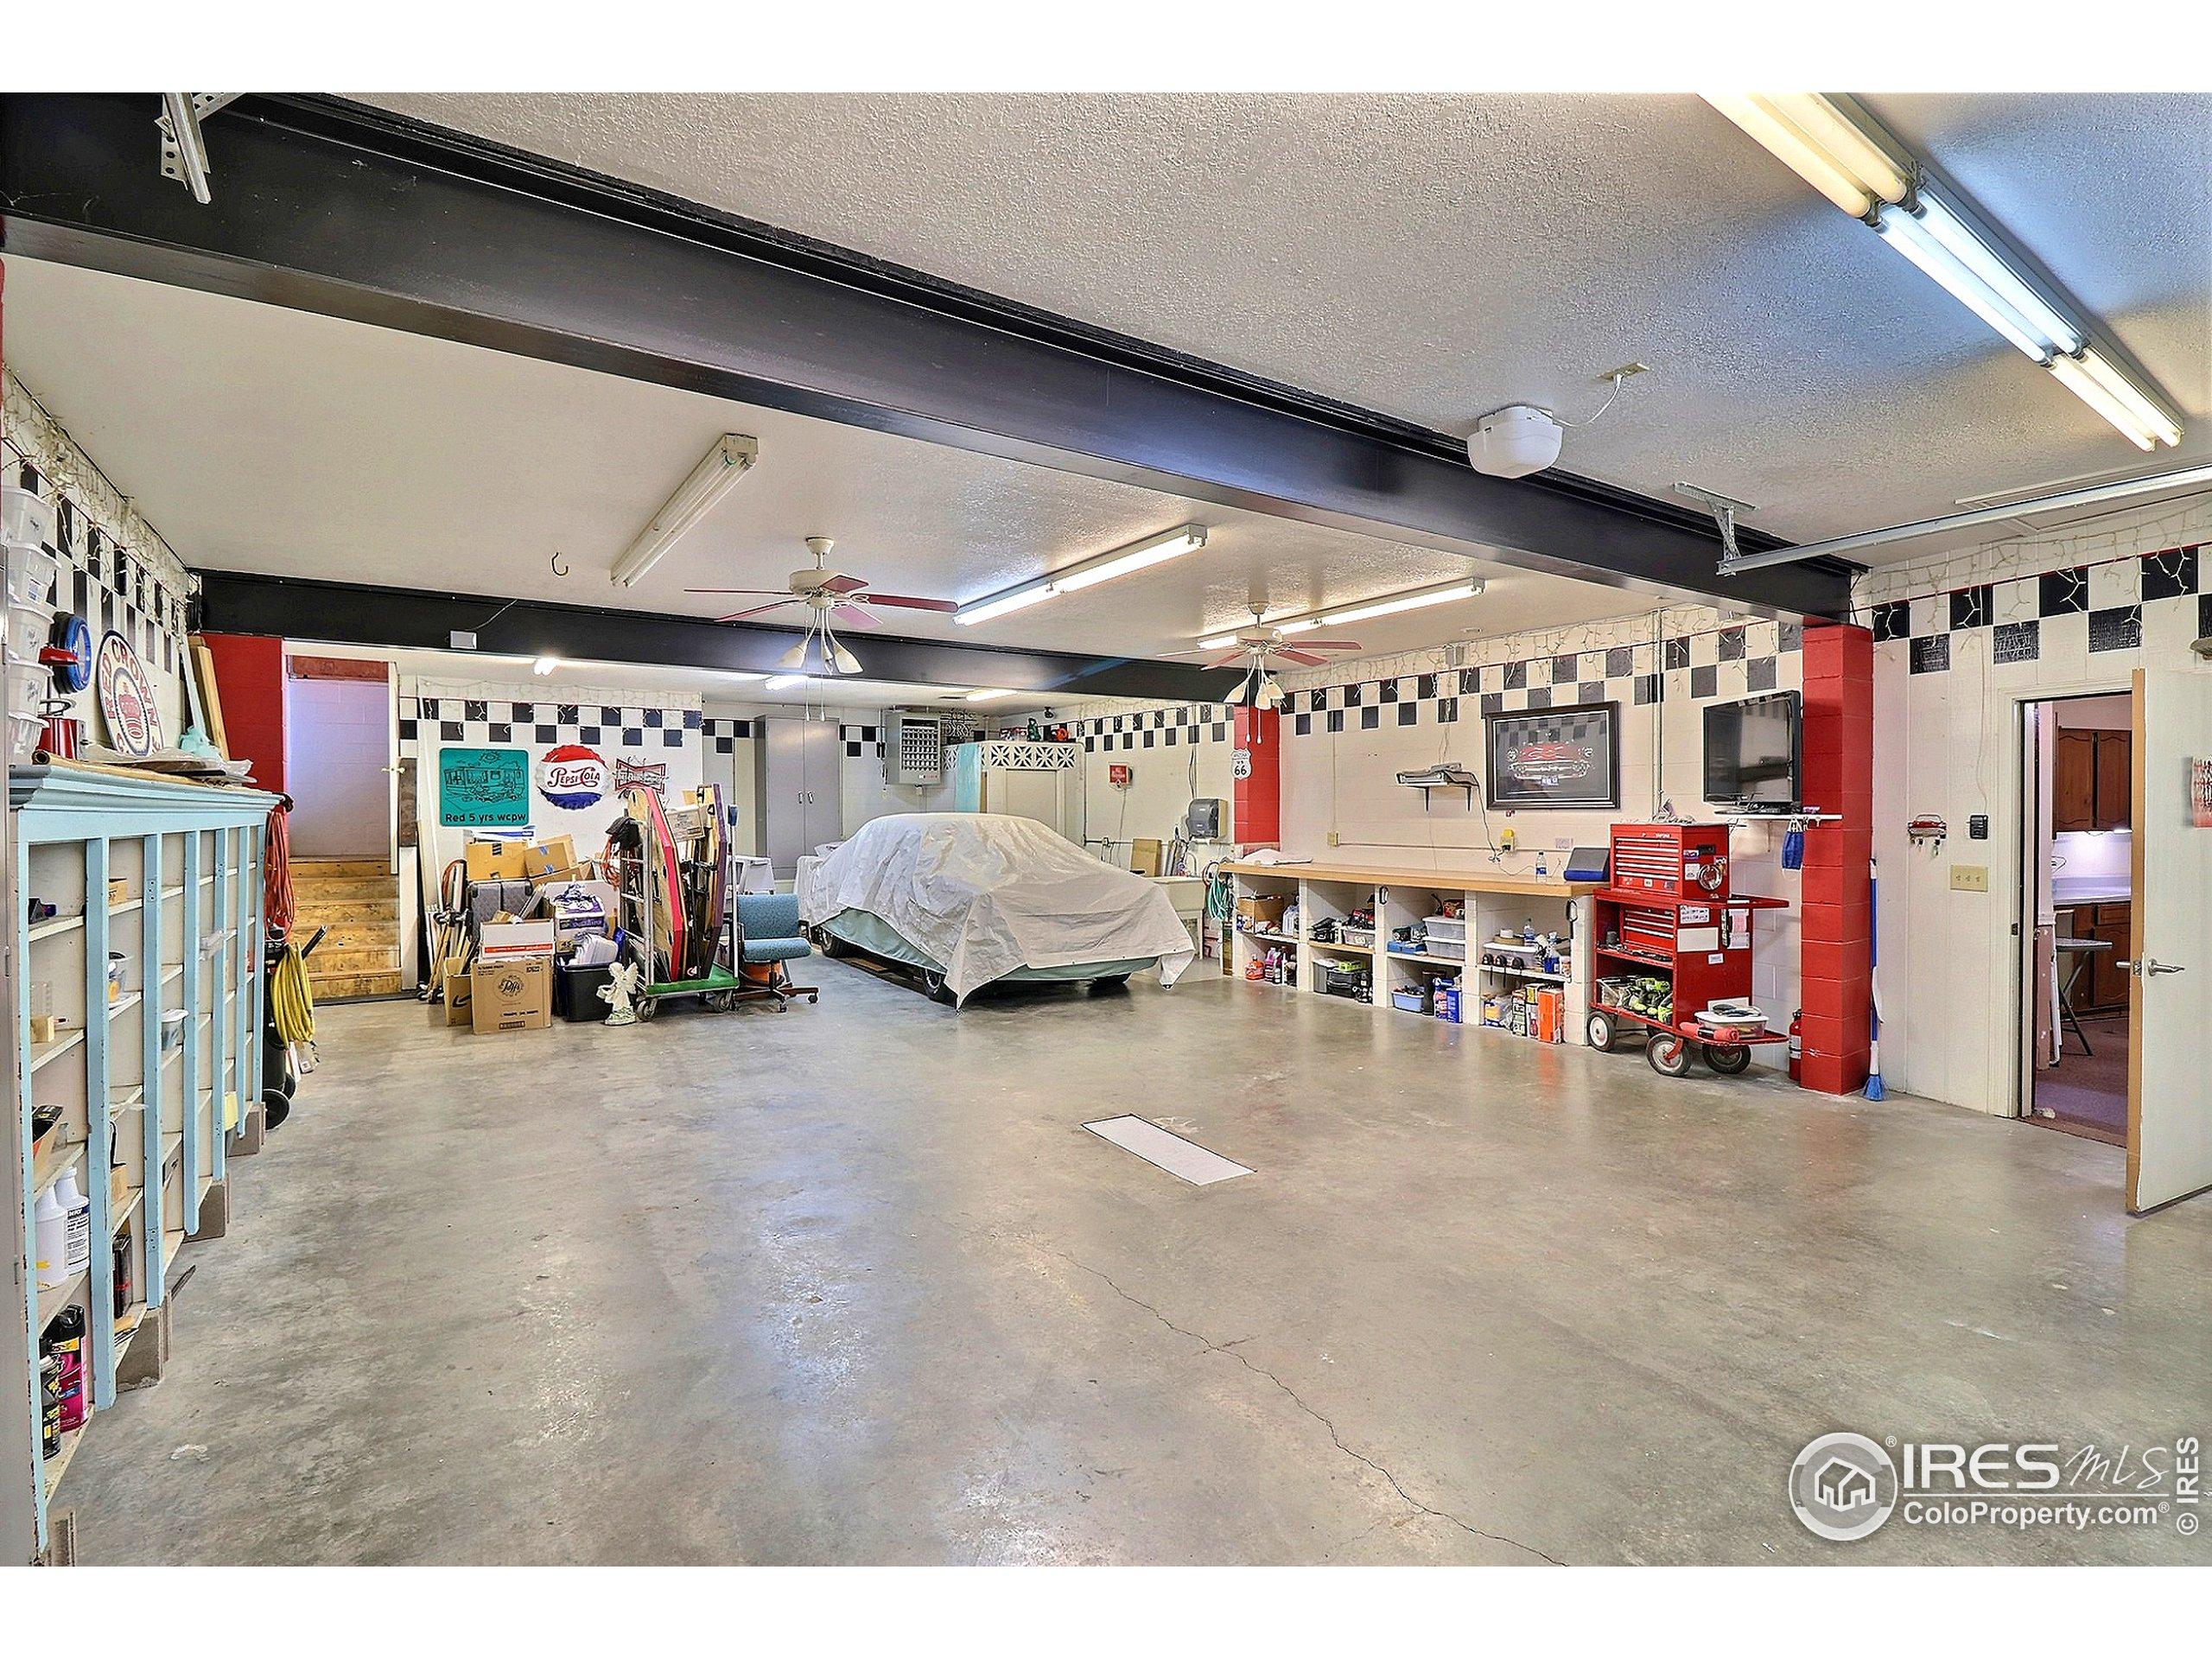 Inside The Garage is a Workshop of your Dreams!